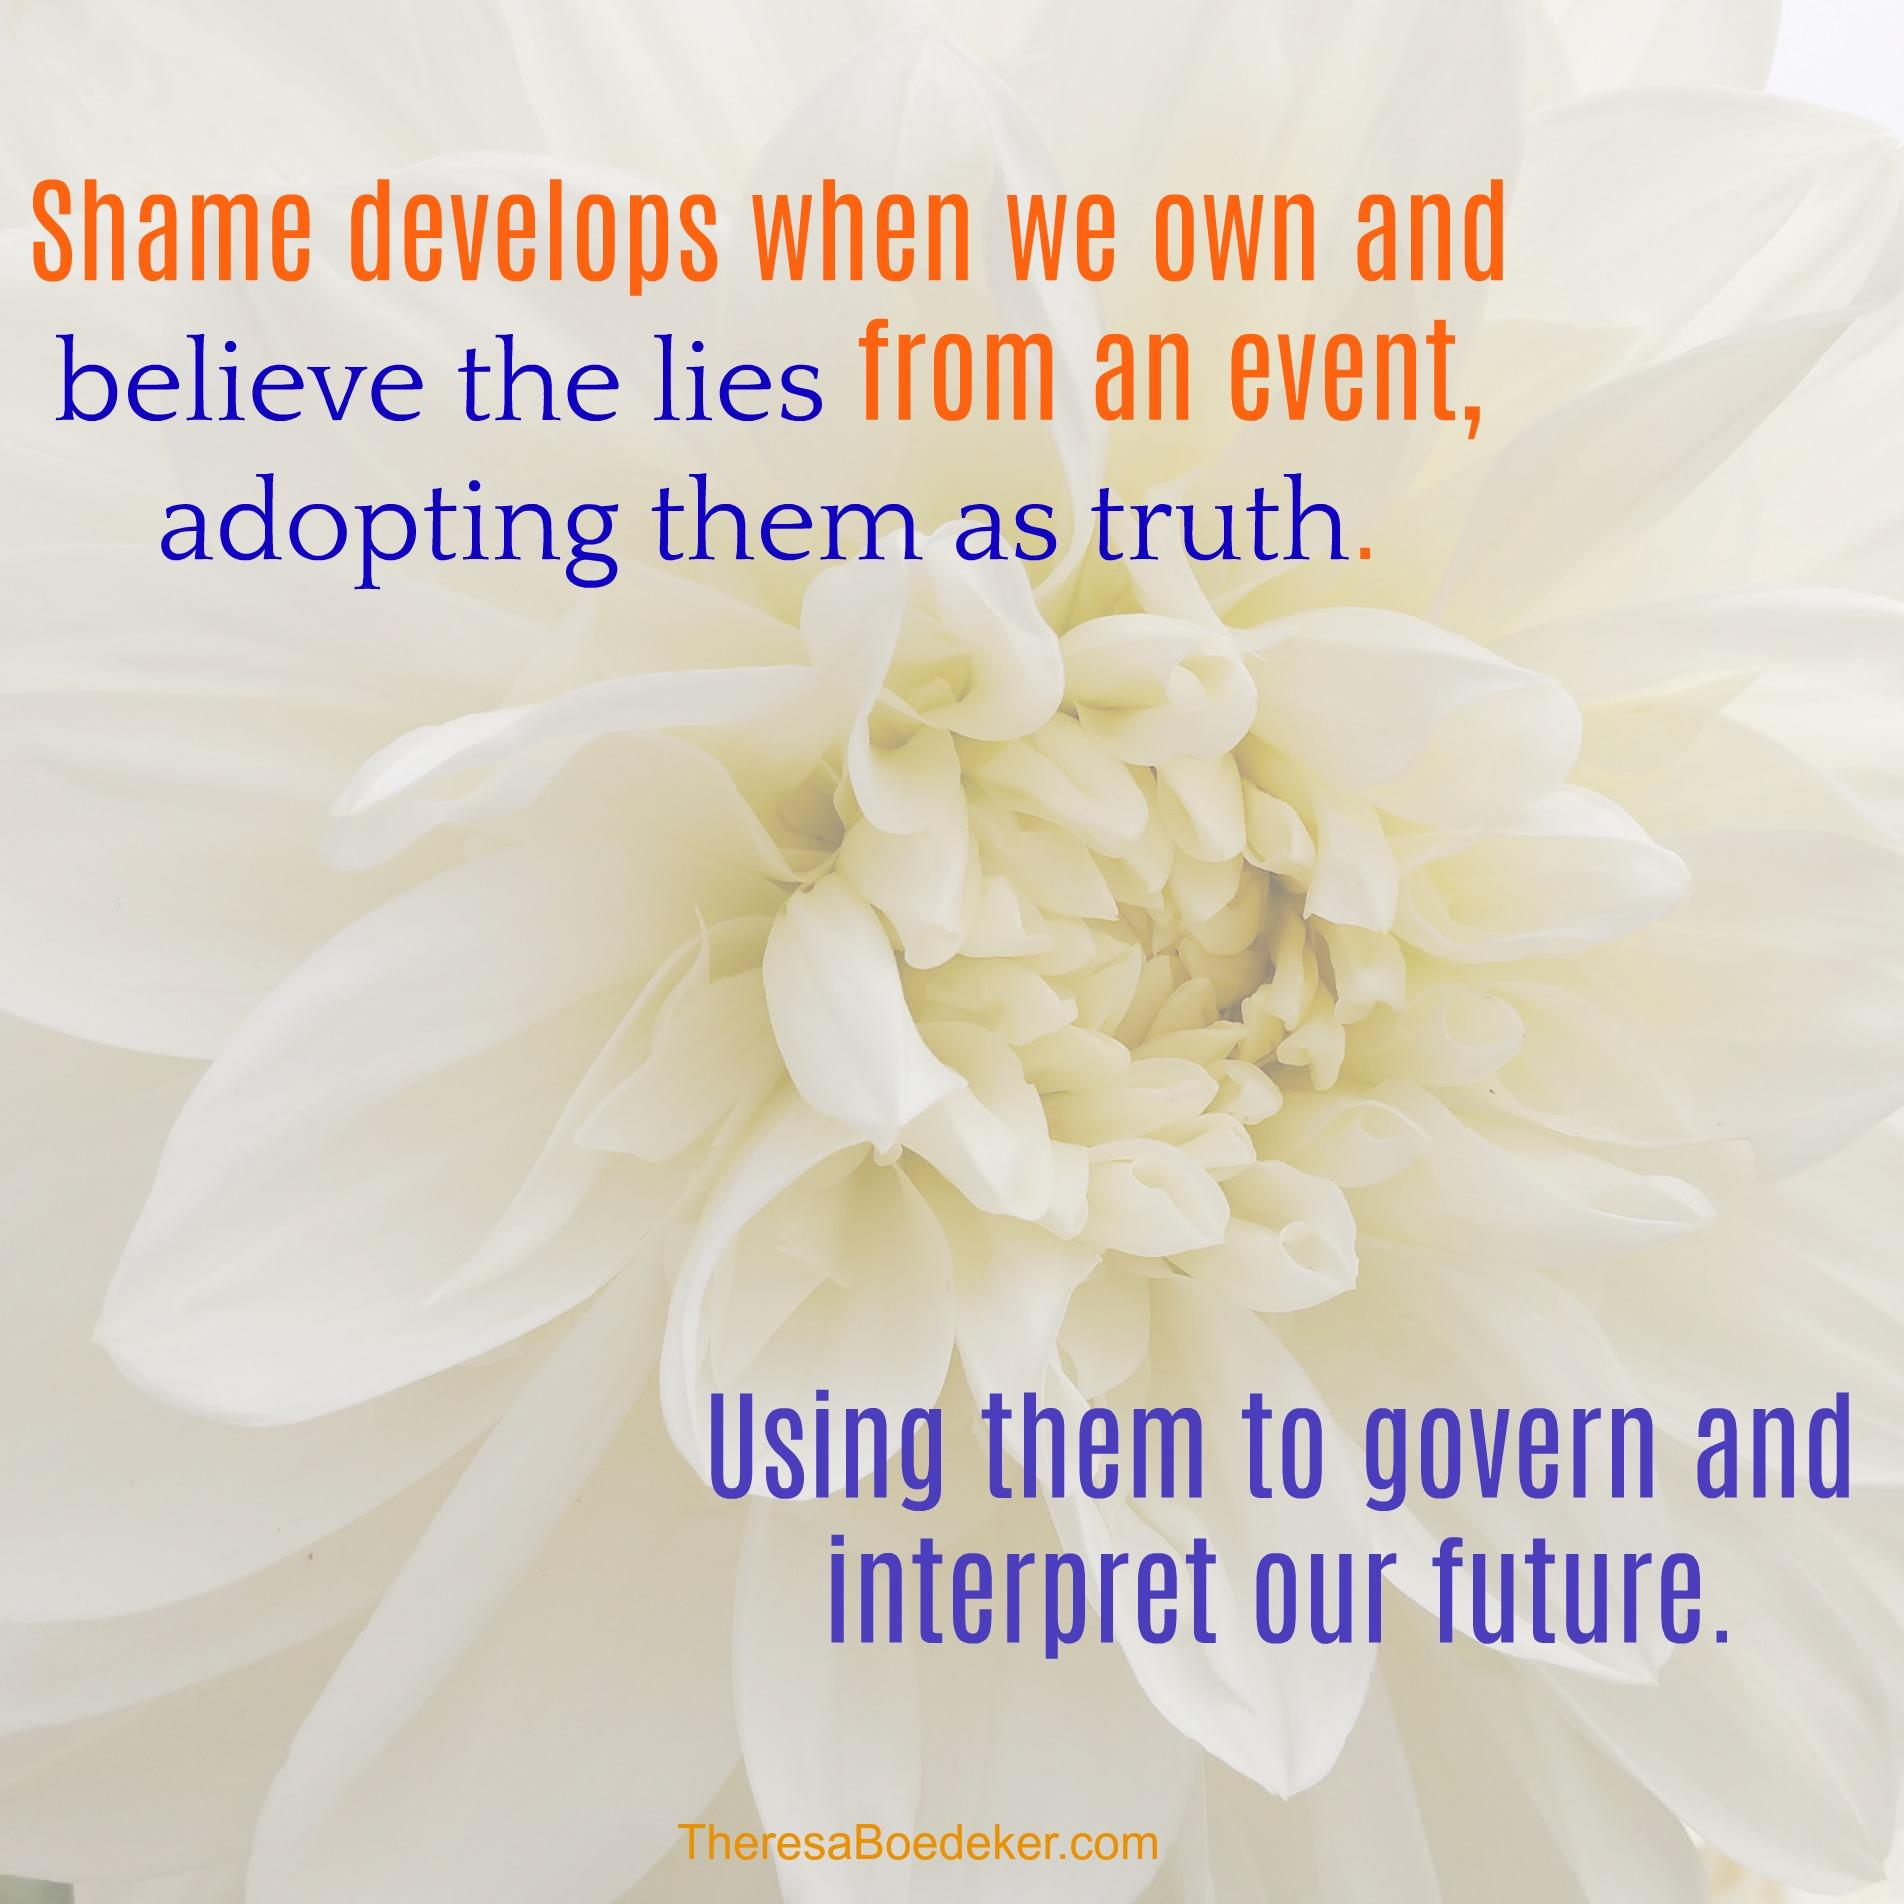 Shame thrives in some environments more than others.